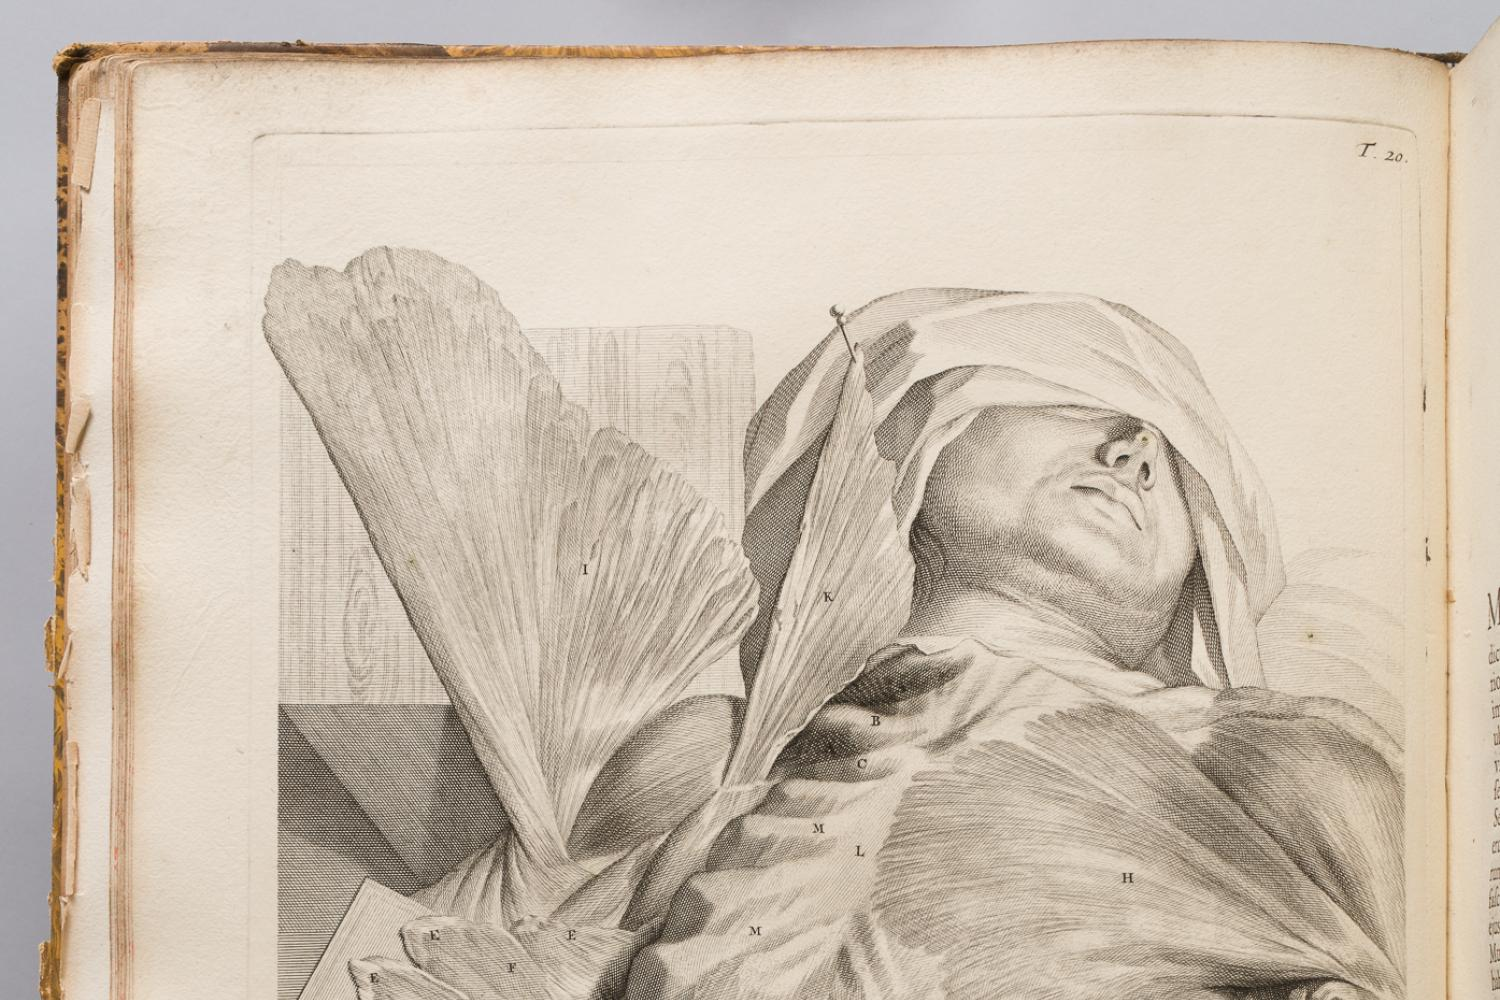 A drawing on a human torso from a medical text